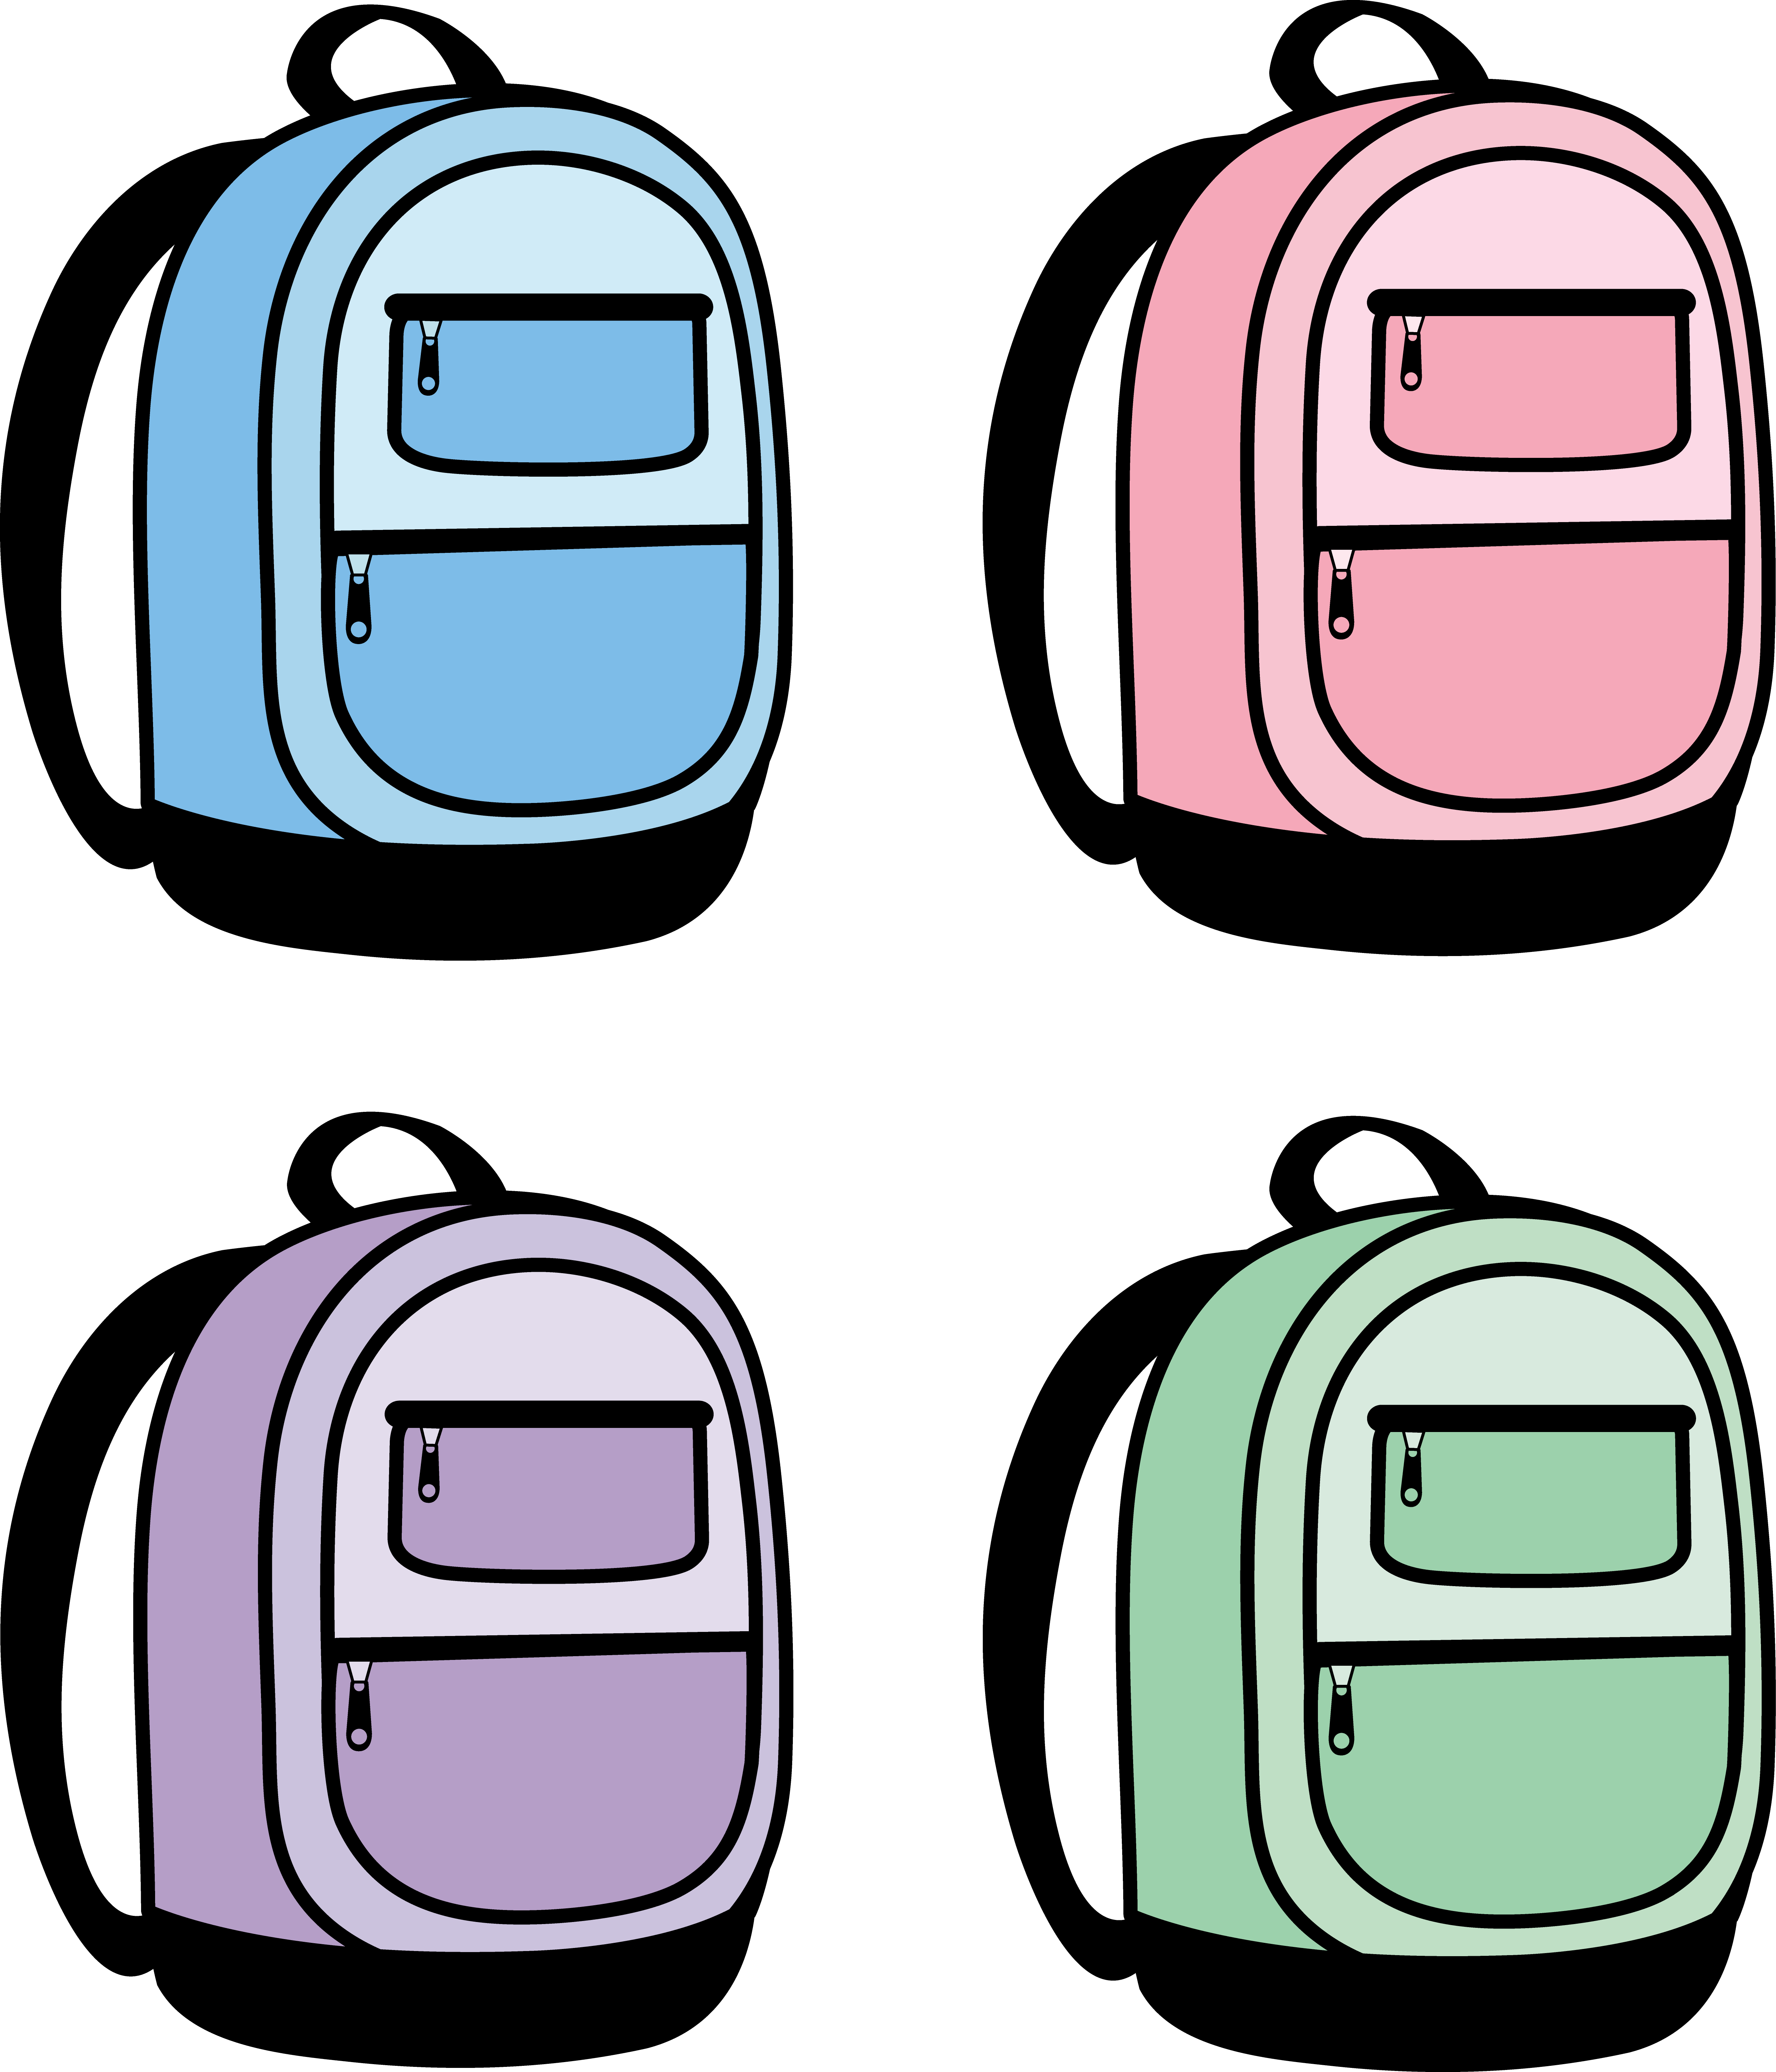 For download free images. Backpack clipart printable